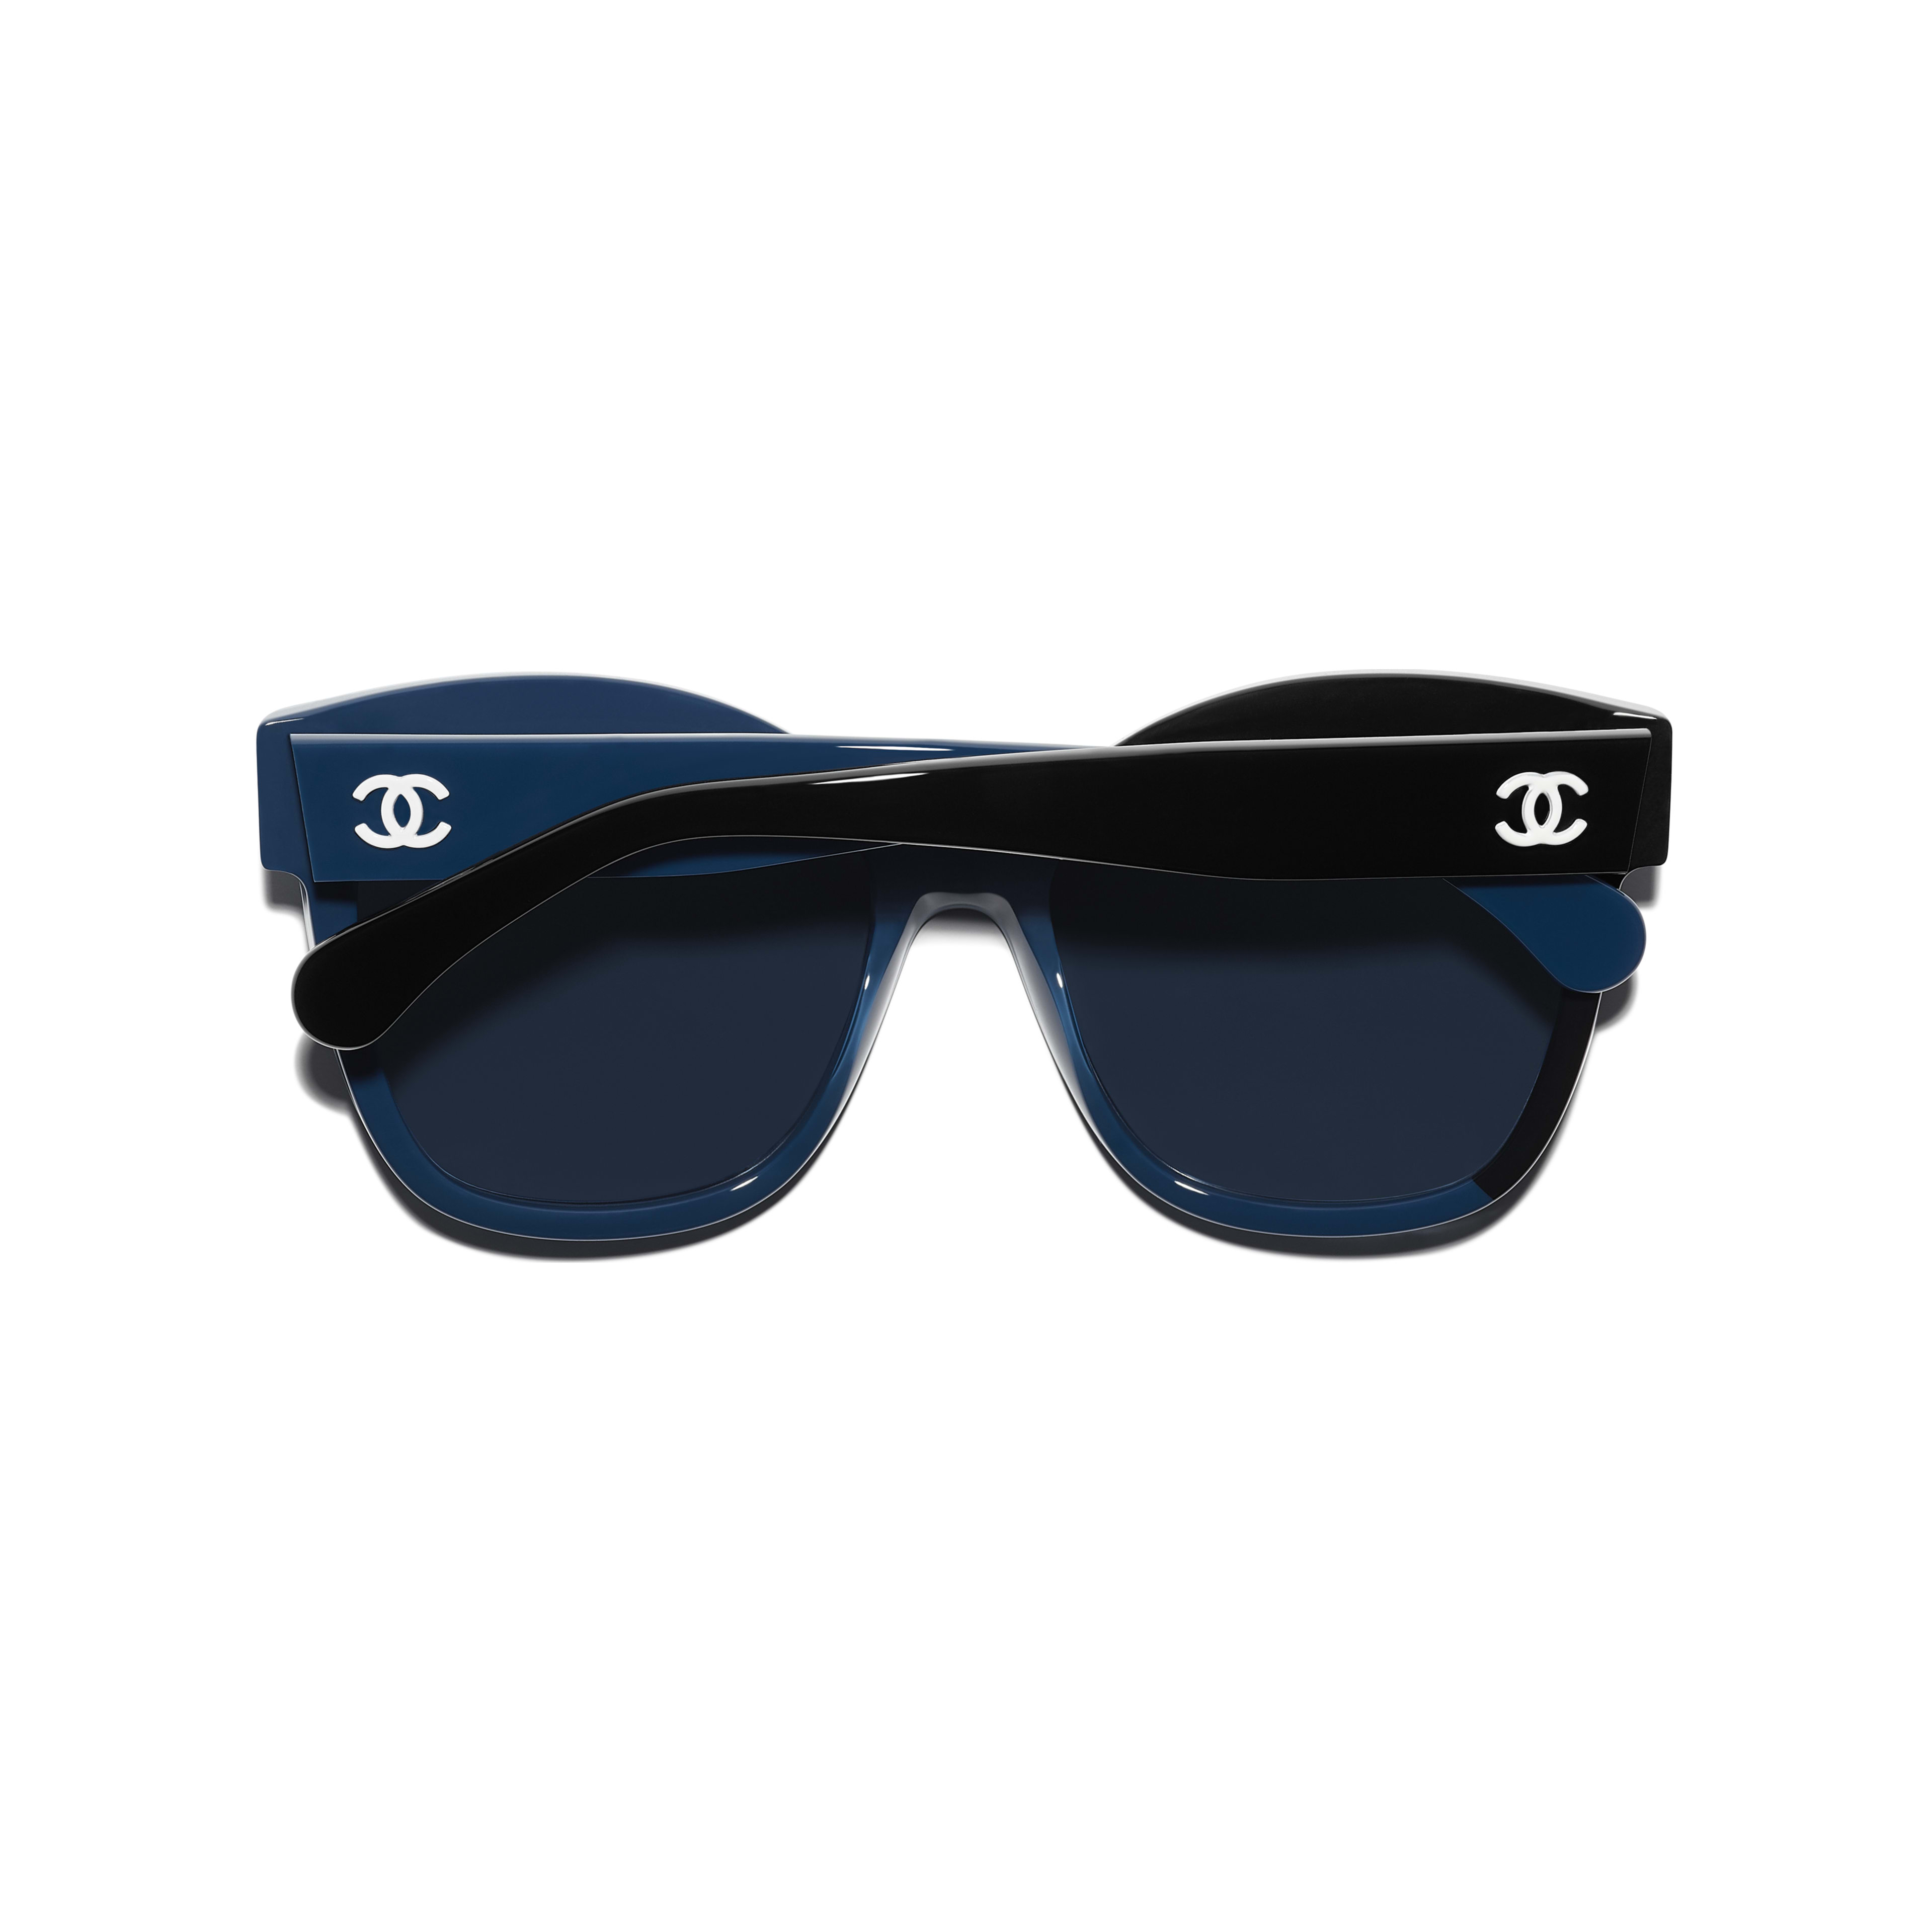 Butterfly Sunglasses - Black & Blue - Acetate - CHANEL - Extra view - see standard sized version